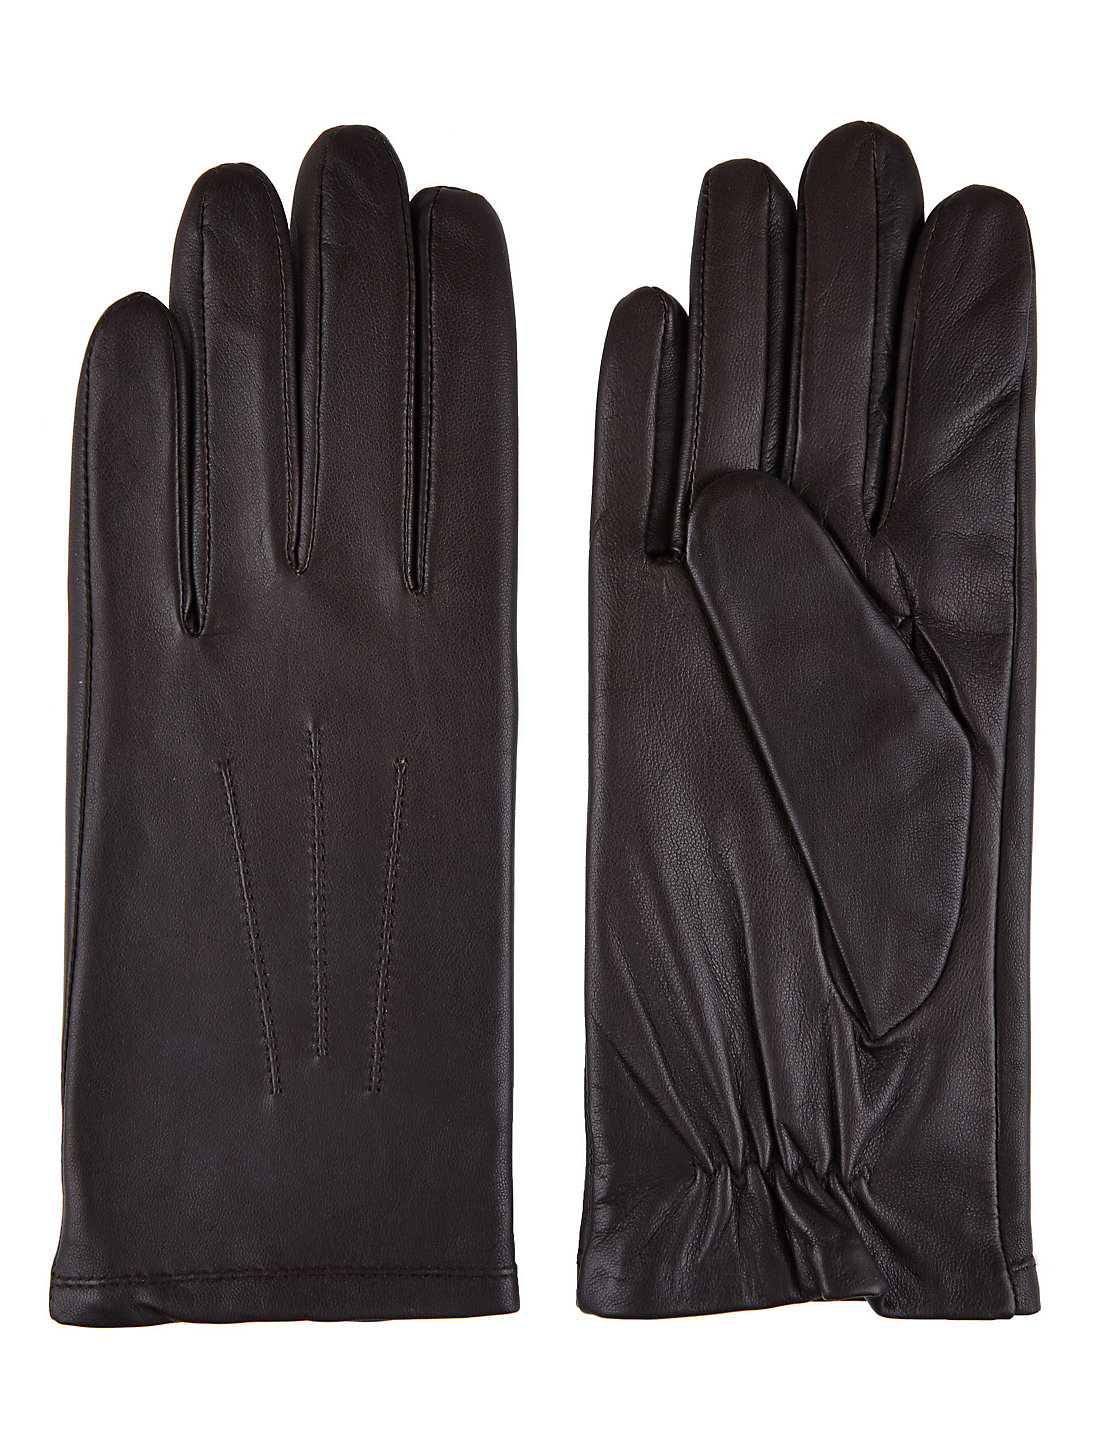 Blue leather gloves ladies uk - Leather Gloves